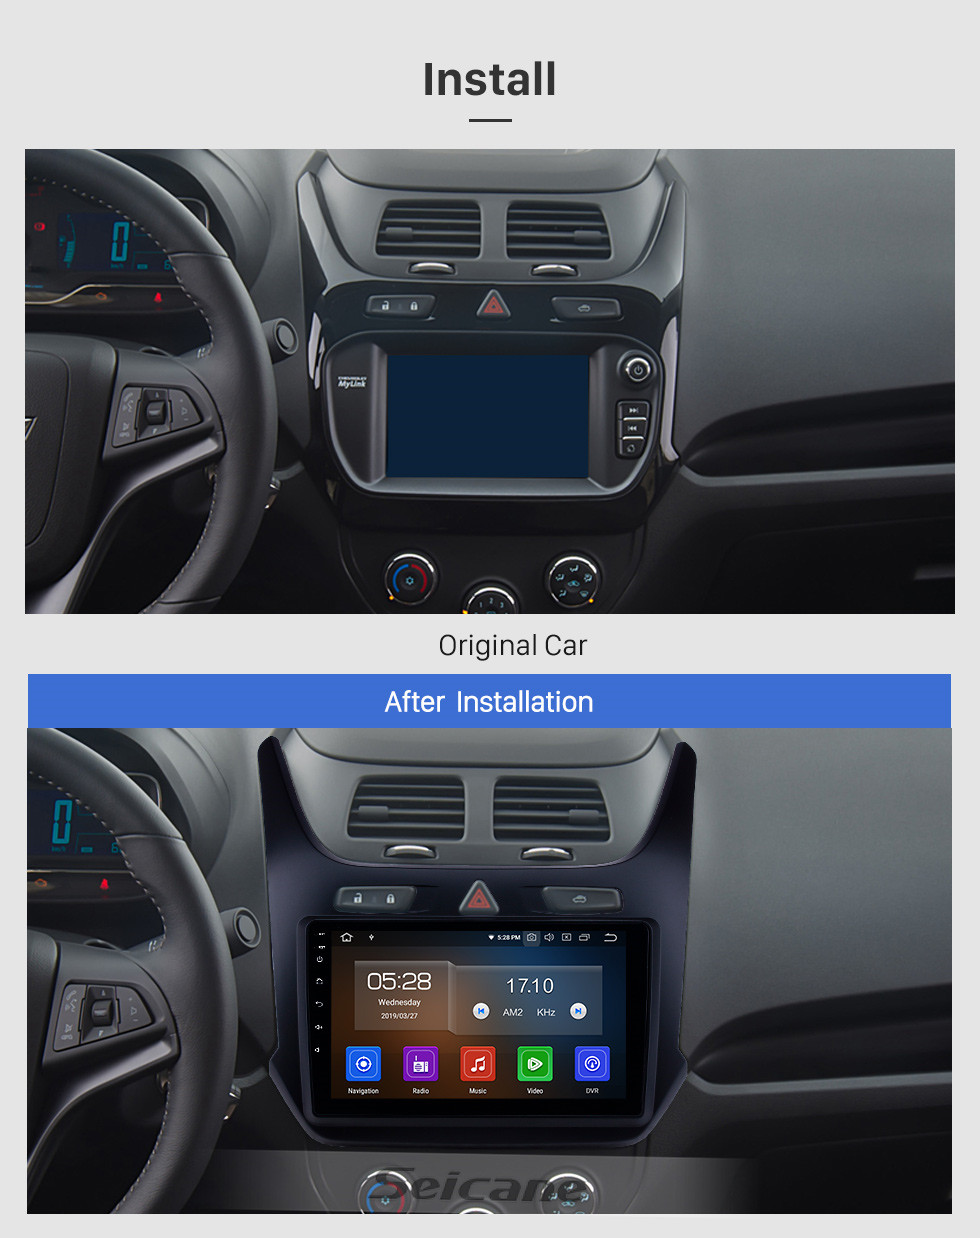 Seicane Android 10.0 9 inch HD Touchscreen GPS Navigation Radio for 2016-2018 chevy Chevrolet Cobalt with USB Bluetooth Carplay support DVR DAB+ Digital TV